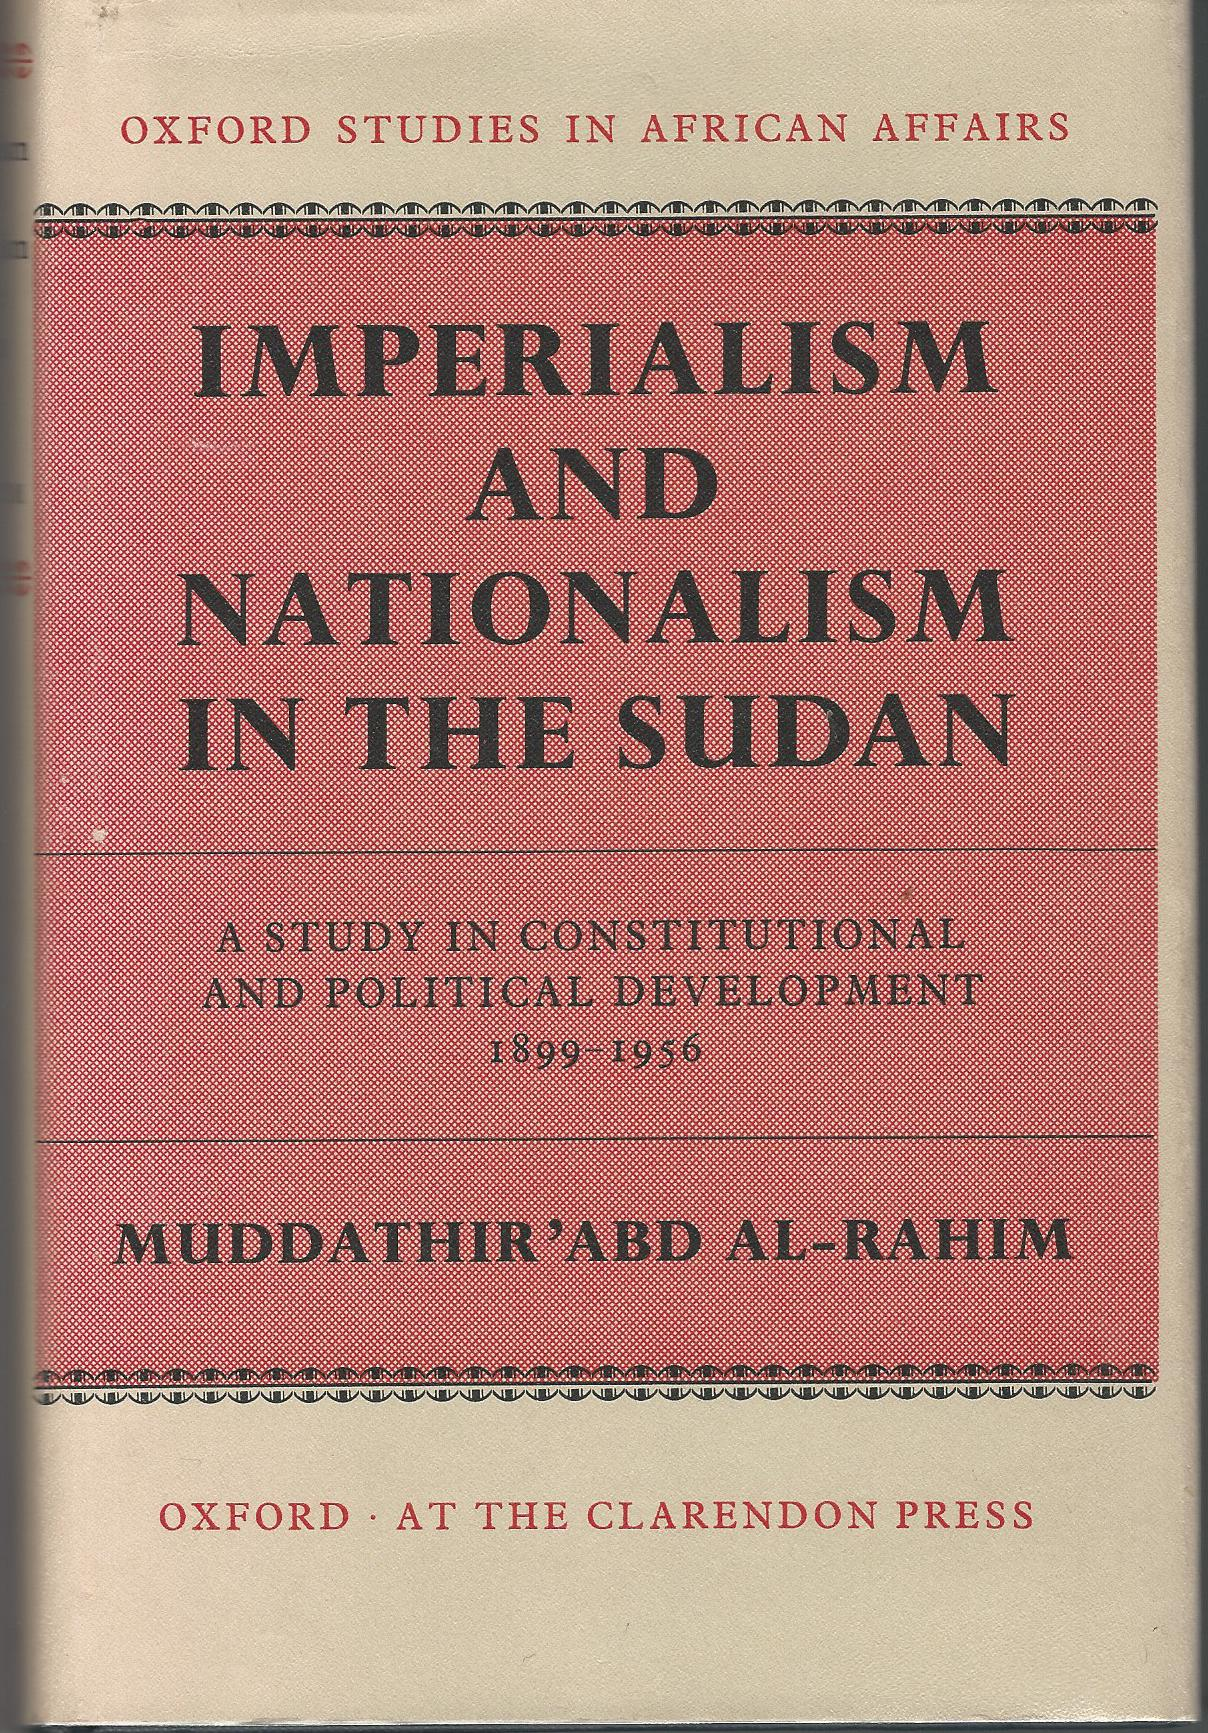 Image for Imperialism and Nationalism in the Sudan: A Study in Constitutional and Political Development 1899-1956